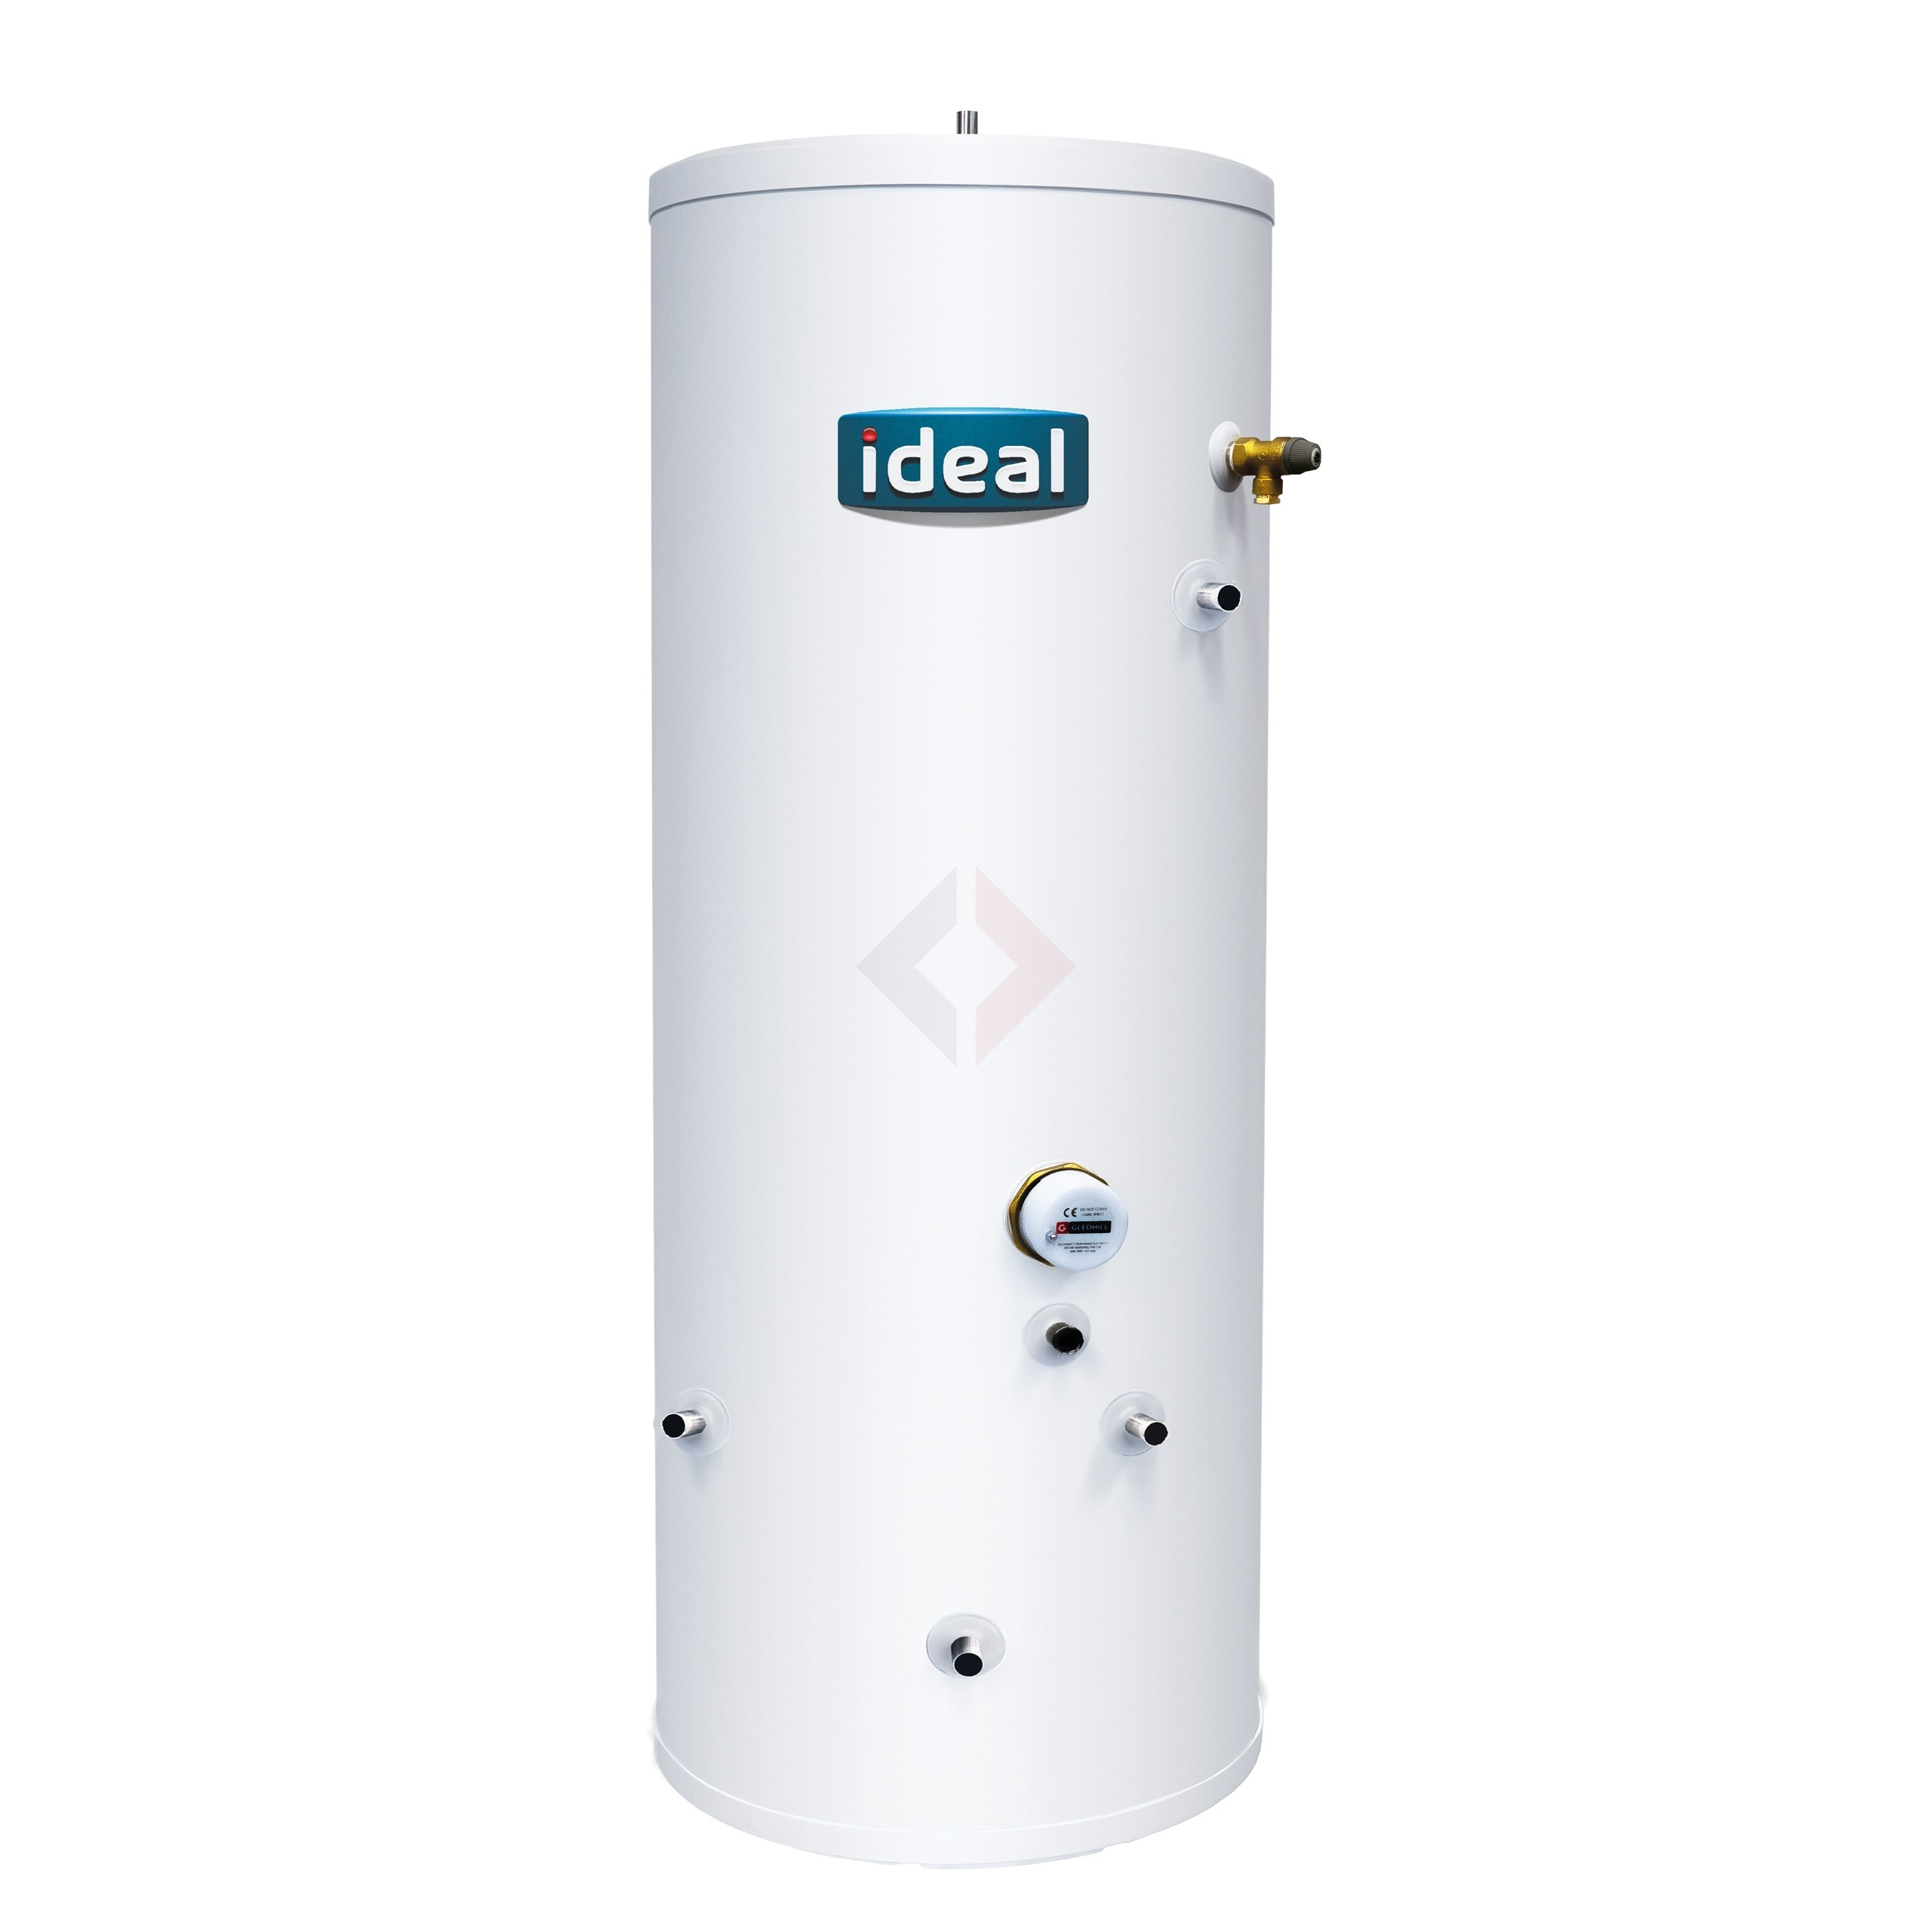 Ideal Pro 180L Indirect Unvented Cylinder